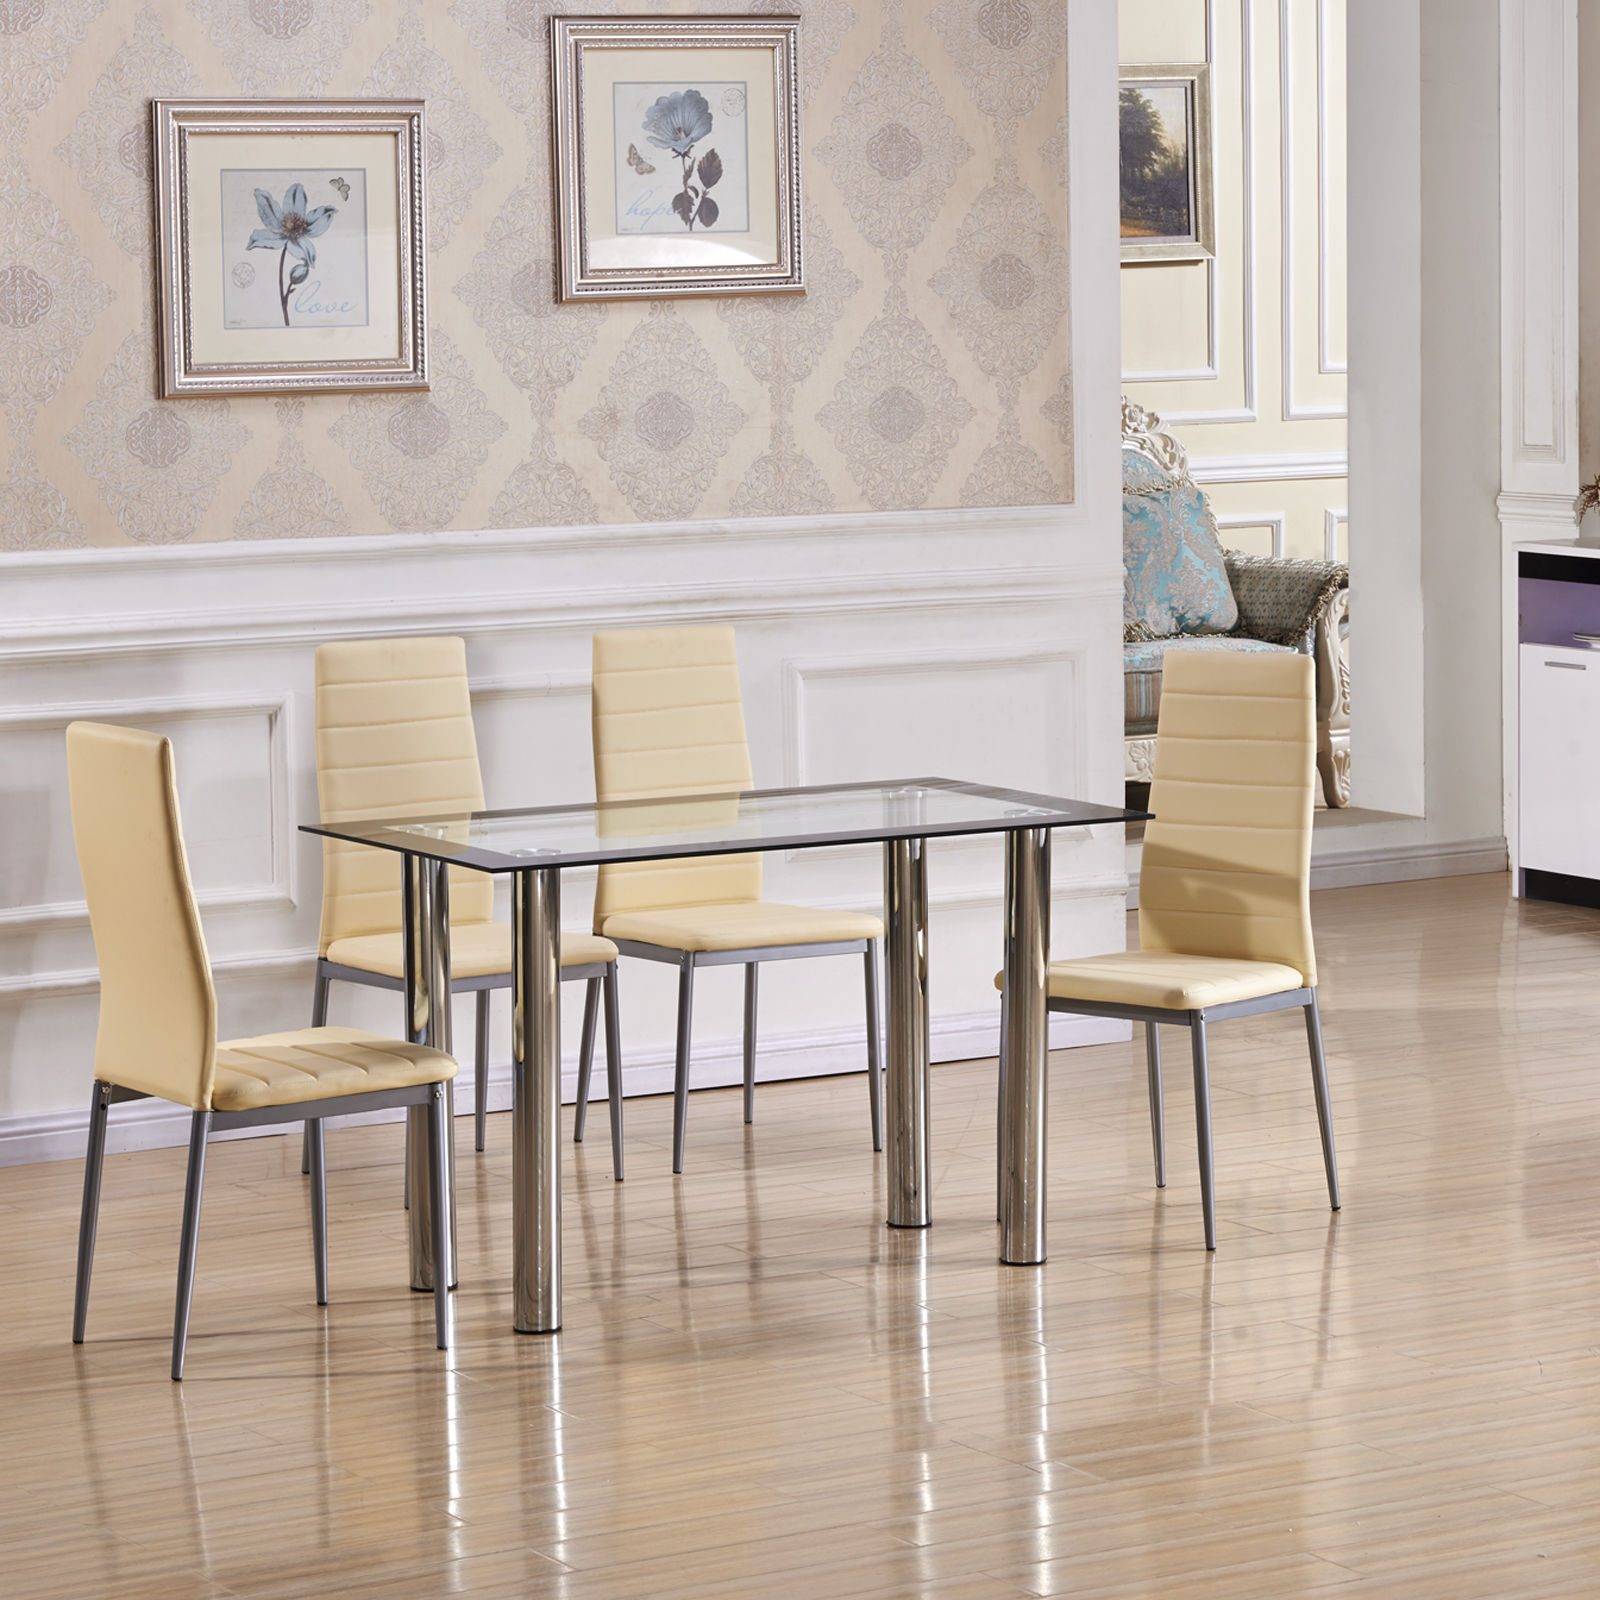 White Leather Dining Room Set: Clear Glass Dining Table Set With 4 Milky White Faux